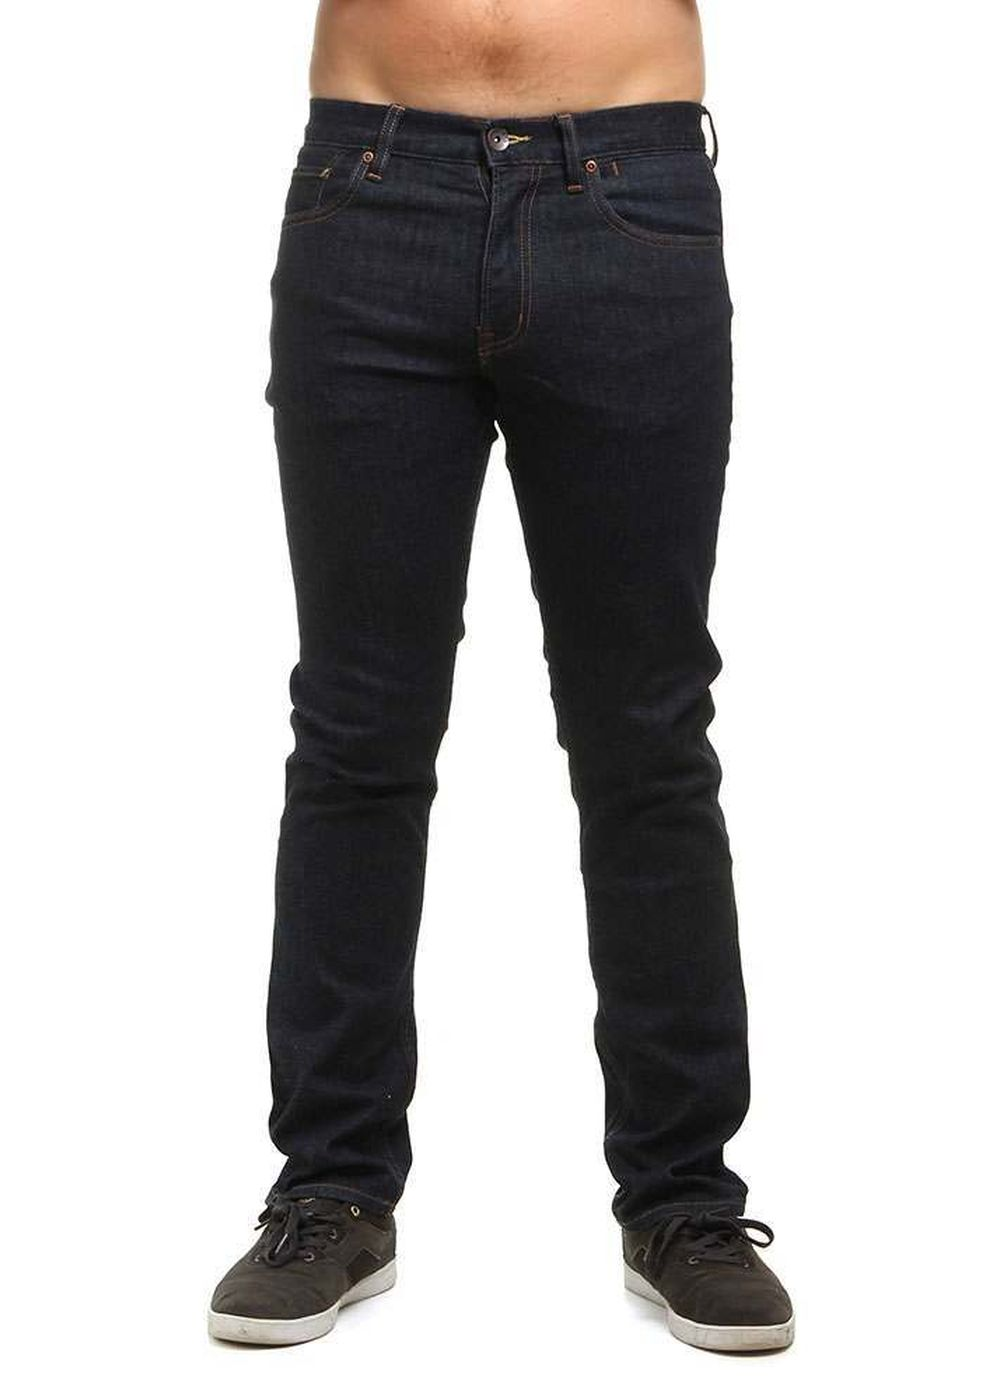 quiksilver-revolver-jeans-rinse